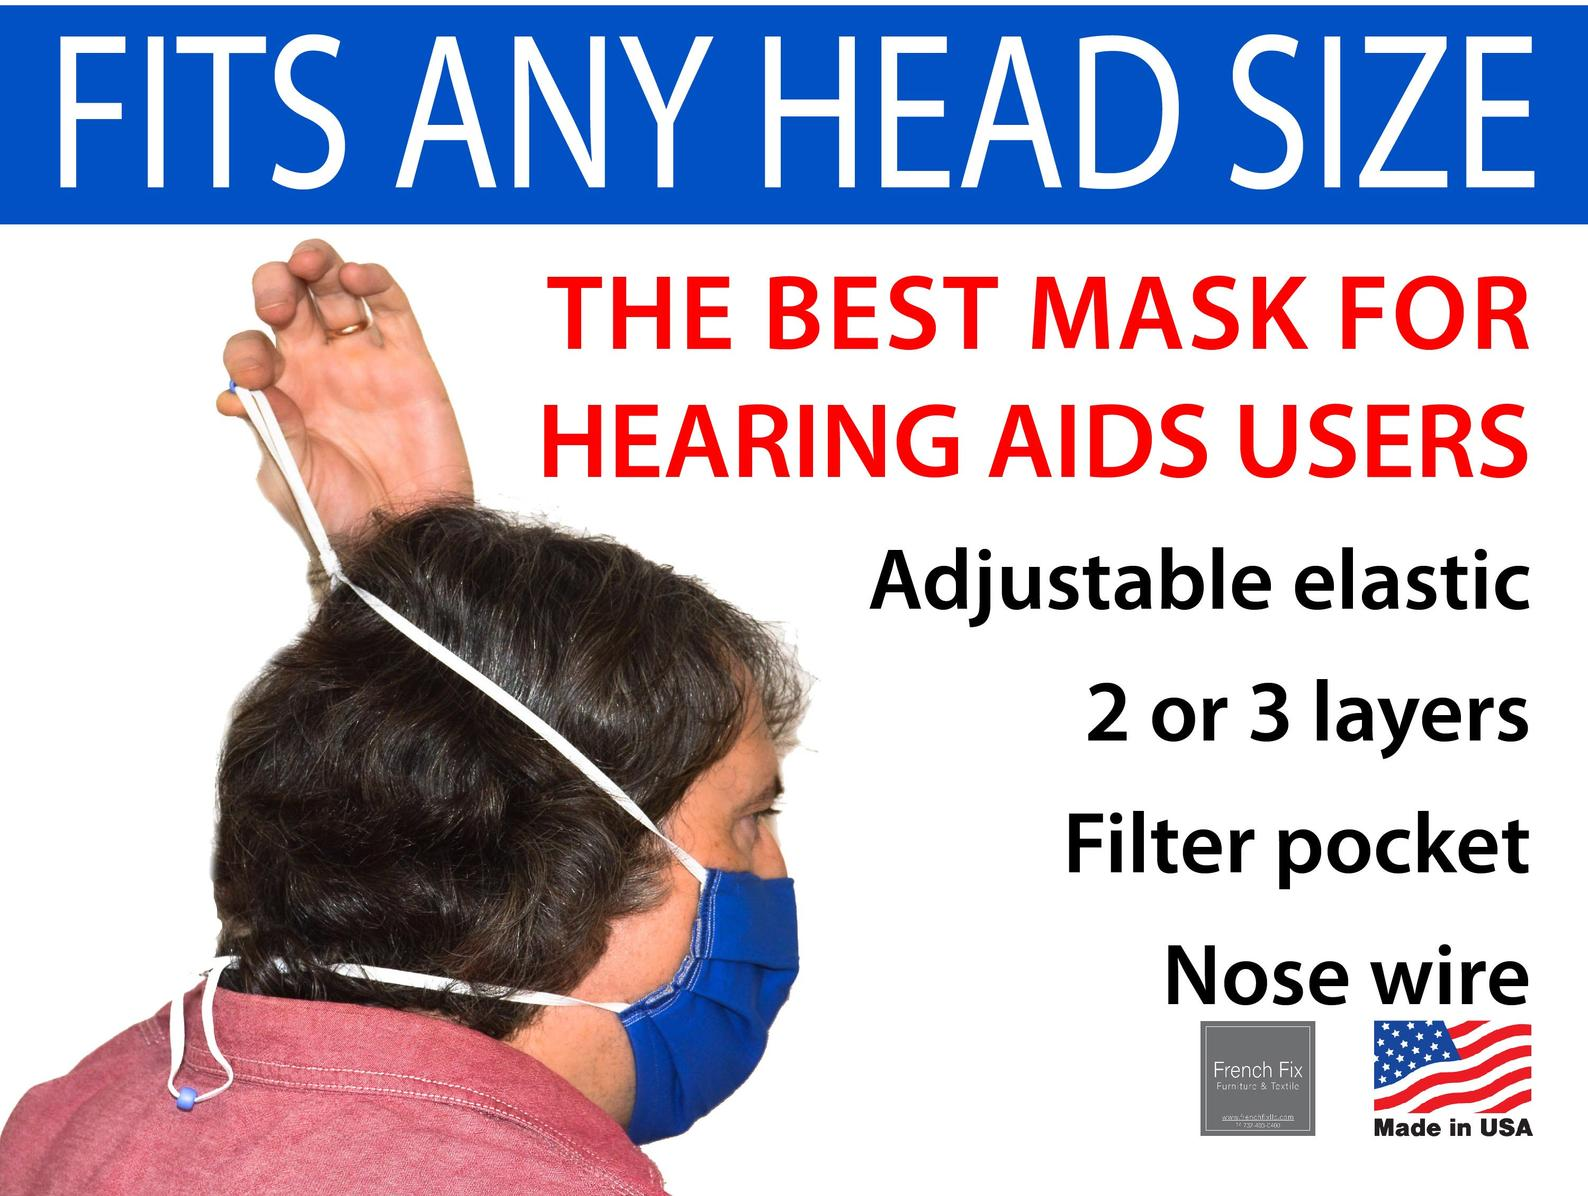 The best mask for hearing aid users